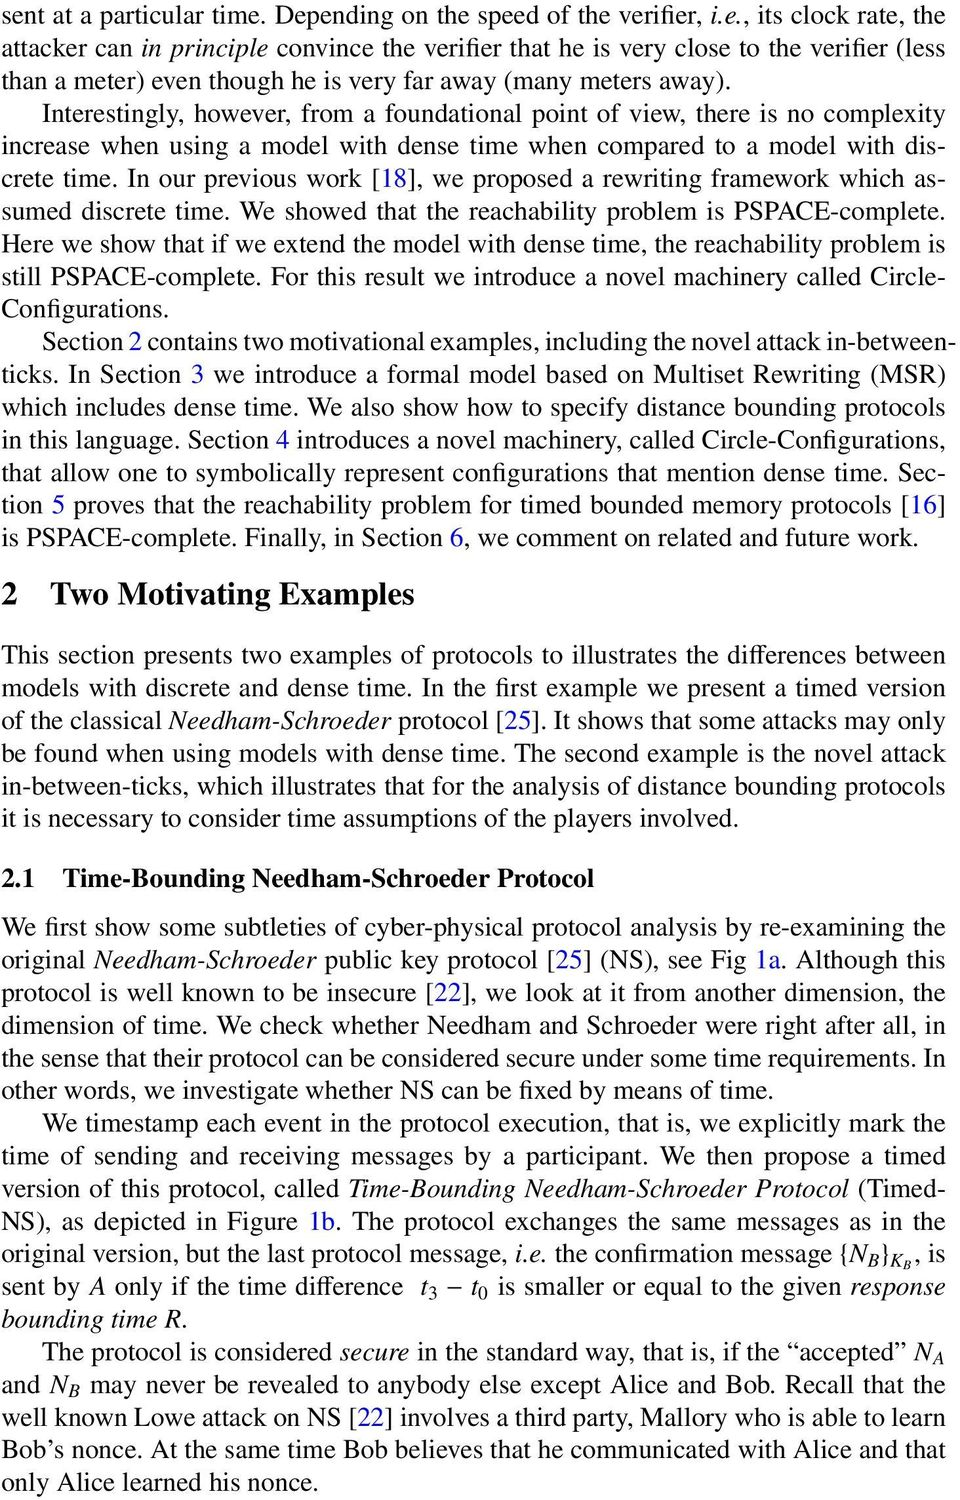 In our previous work [18], we proposed a rewriting framework which assumed discrete time. We showed that the reachability problem is PSPACE-complete.